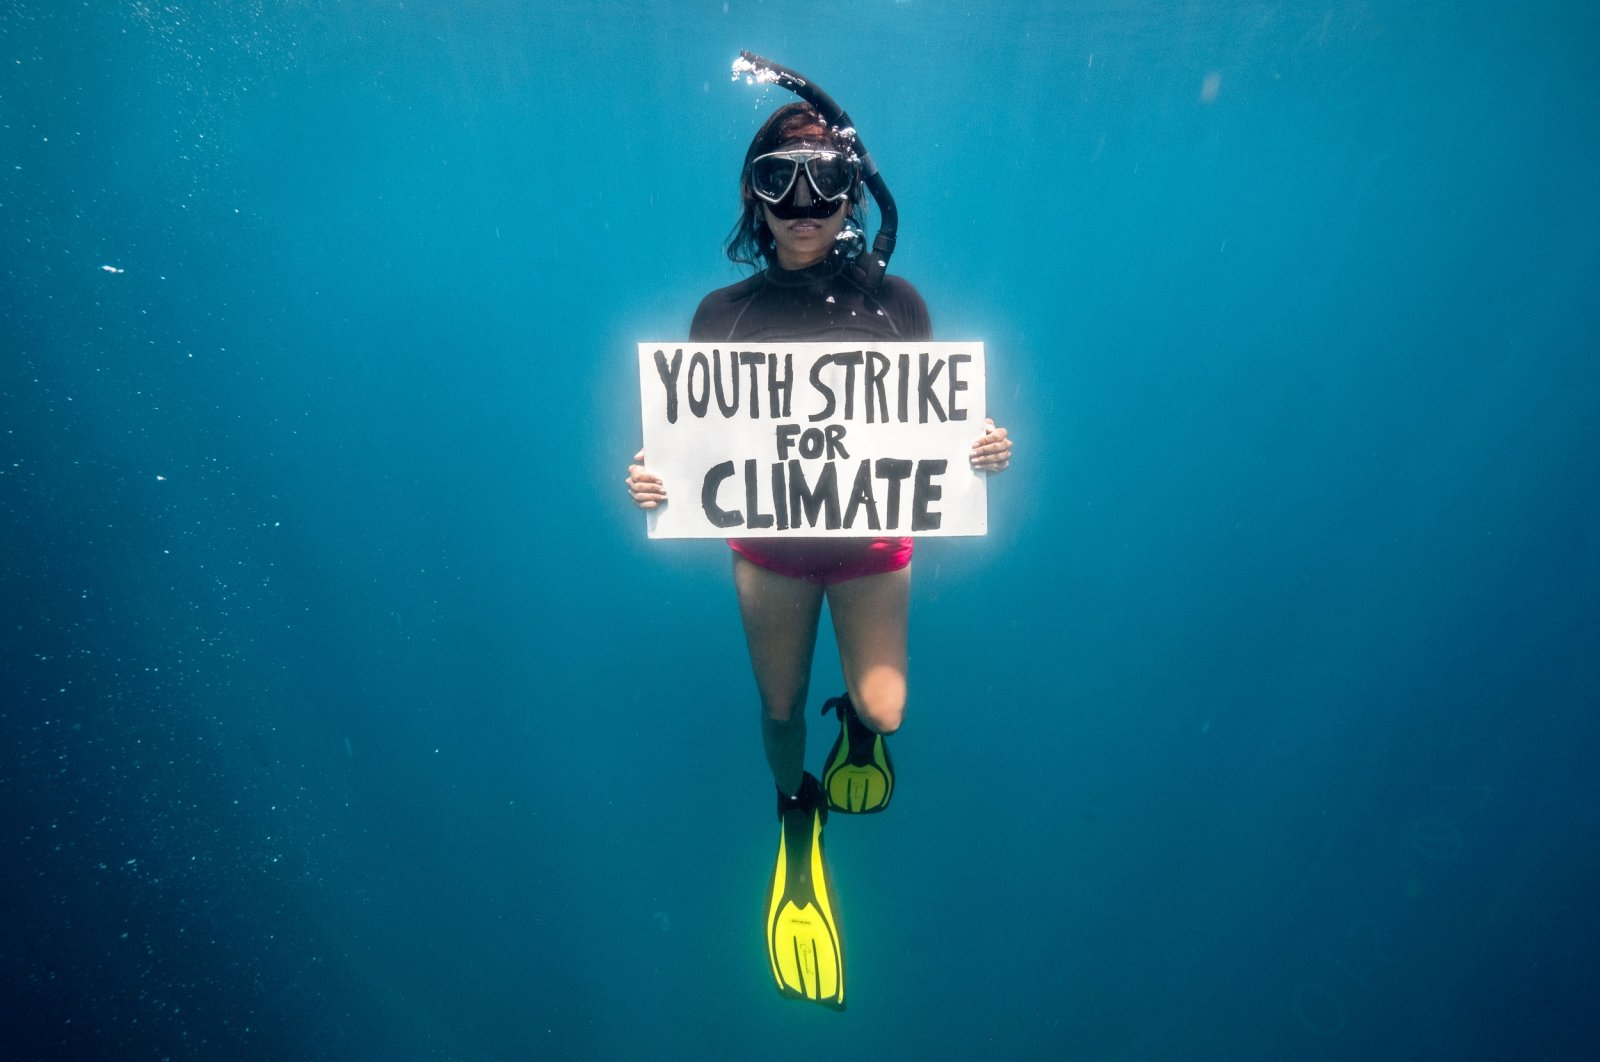 """Mauritian scientist and climate change activist Shaama Sandooyea 24, holds a placard reading """"Youth Strike For Climate,"""" during an underwater protest at the Saya de Malha Bank to highlight the need to protect the world's largest seagrass meadow within the Mascarene plateau, Mauritius, March 6, 2021. (Reuters Photo)"""